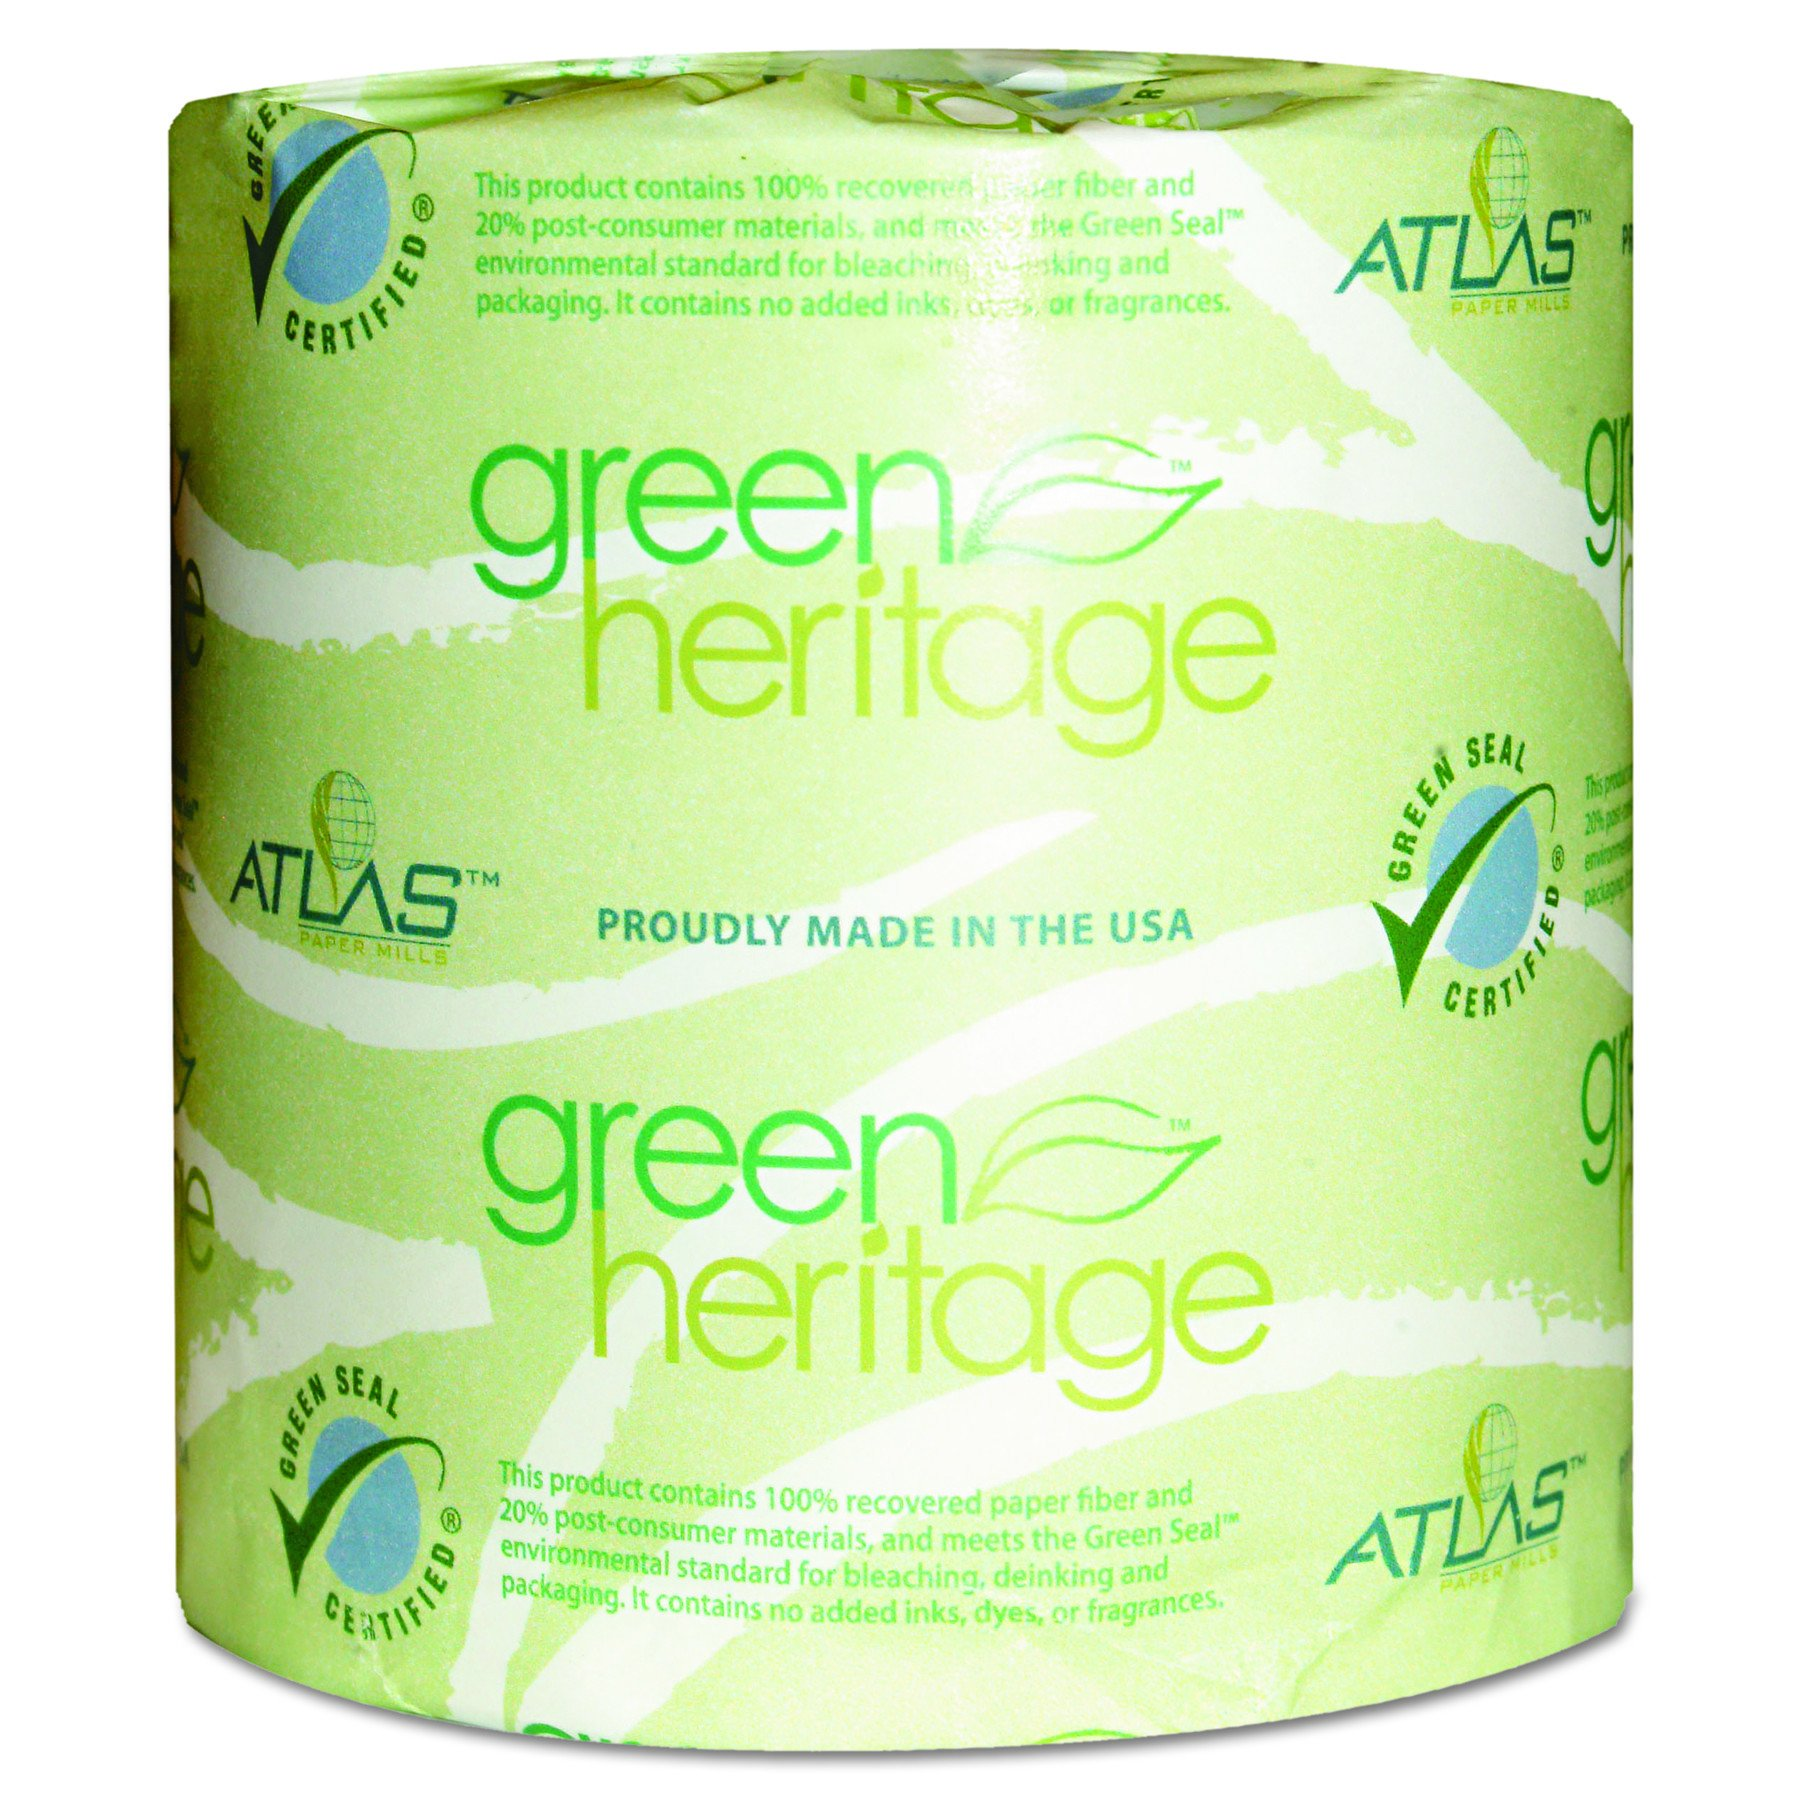 Green Heritage 250 4.5'' Length x 3.8'' Width, 2-Ply Bathroom Tissue (Case of 96 Rolls, 500 per Roll) by Green Heritage